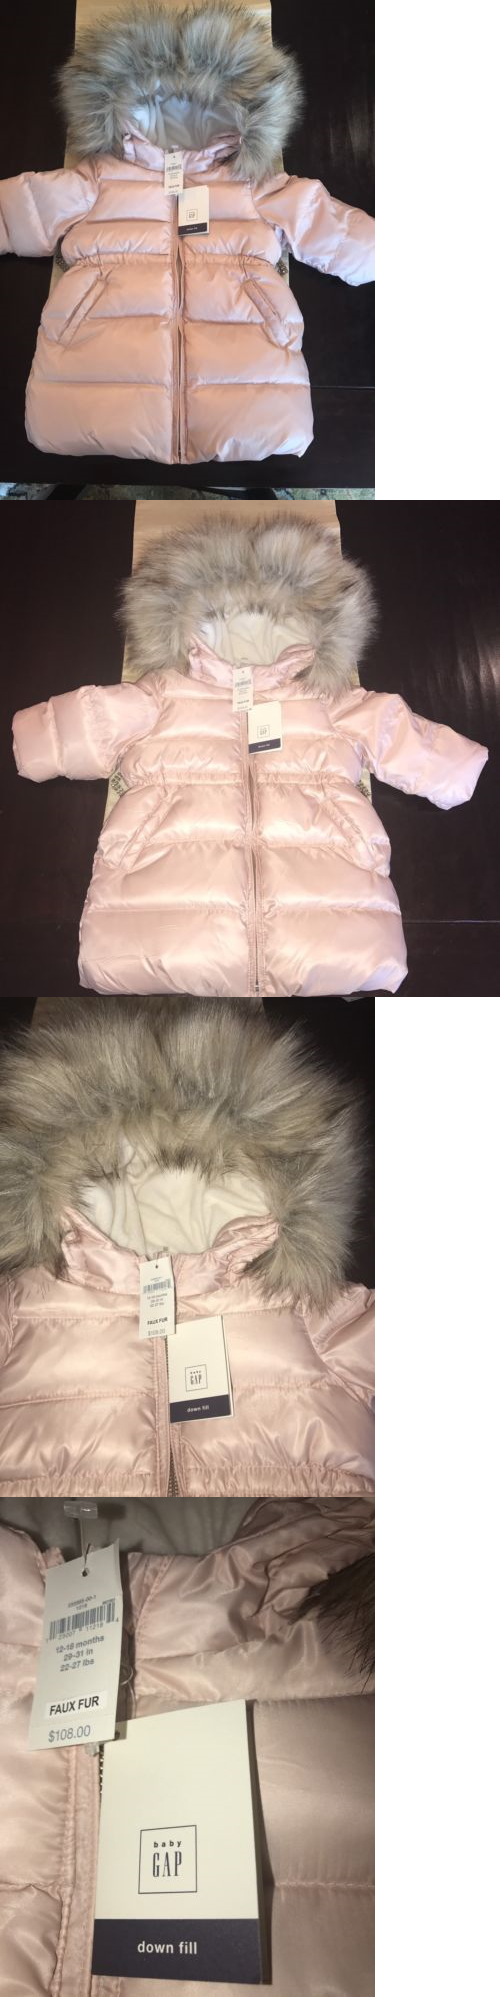 70cc2caf5 Outerwear 147202  Baby Gap Girl Down Warmest Fur-Lined Long Puffer ...